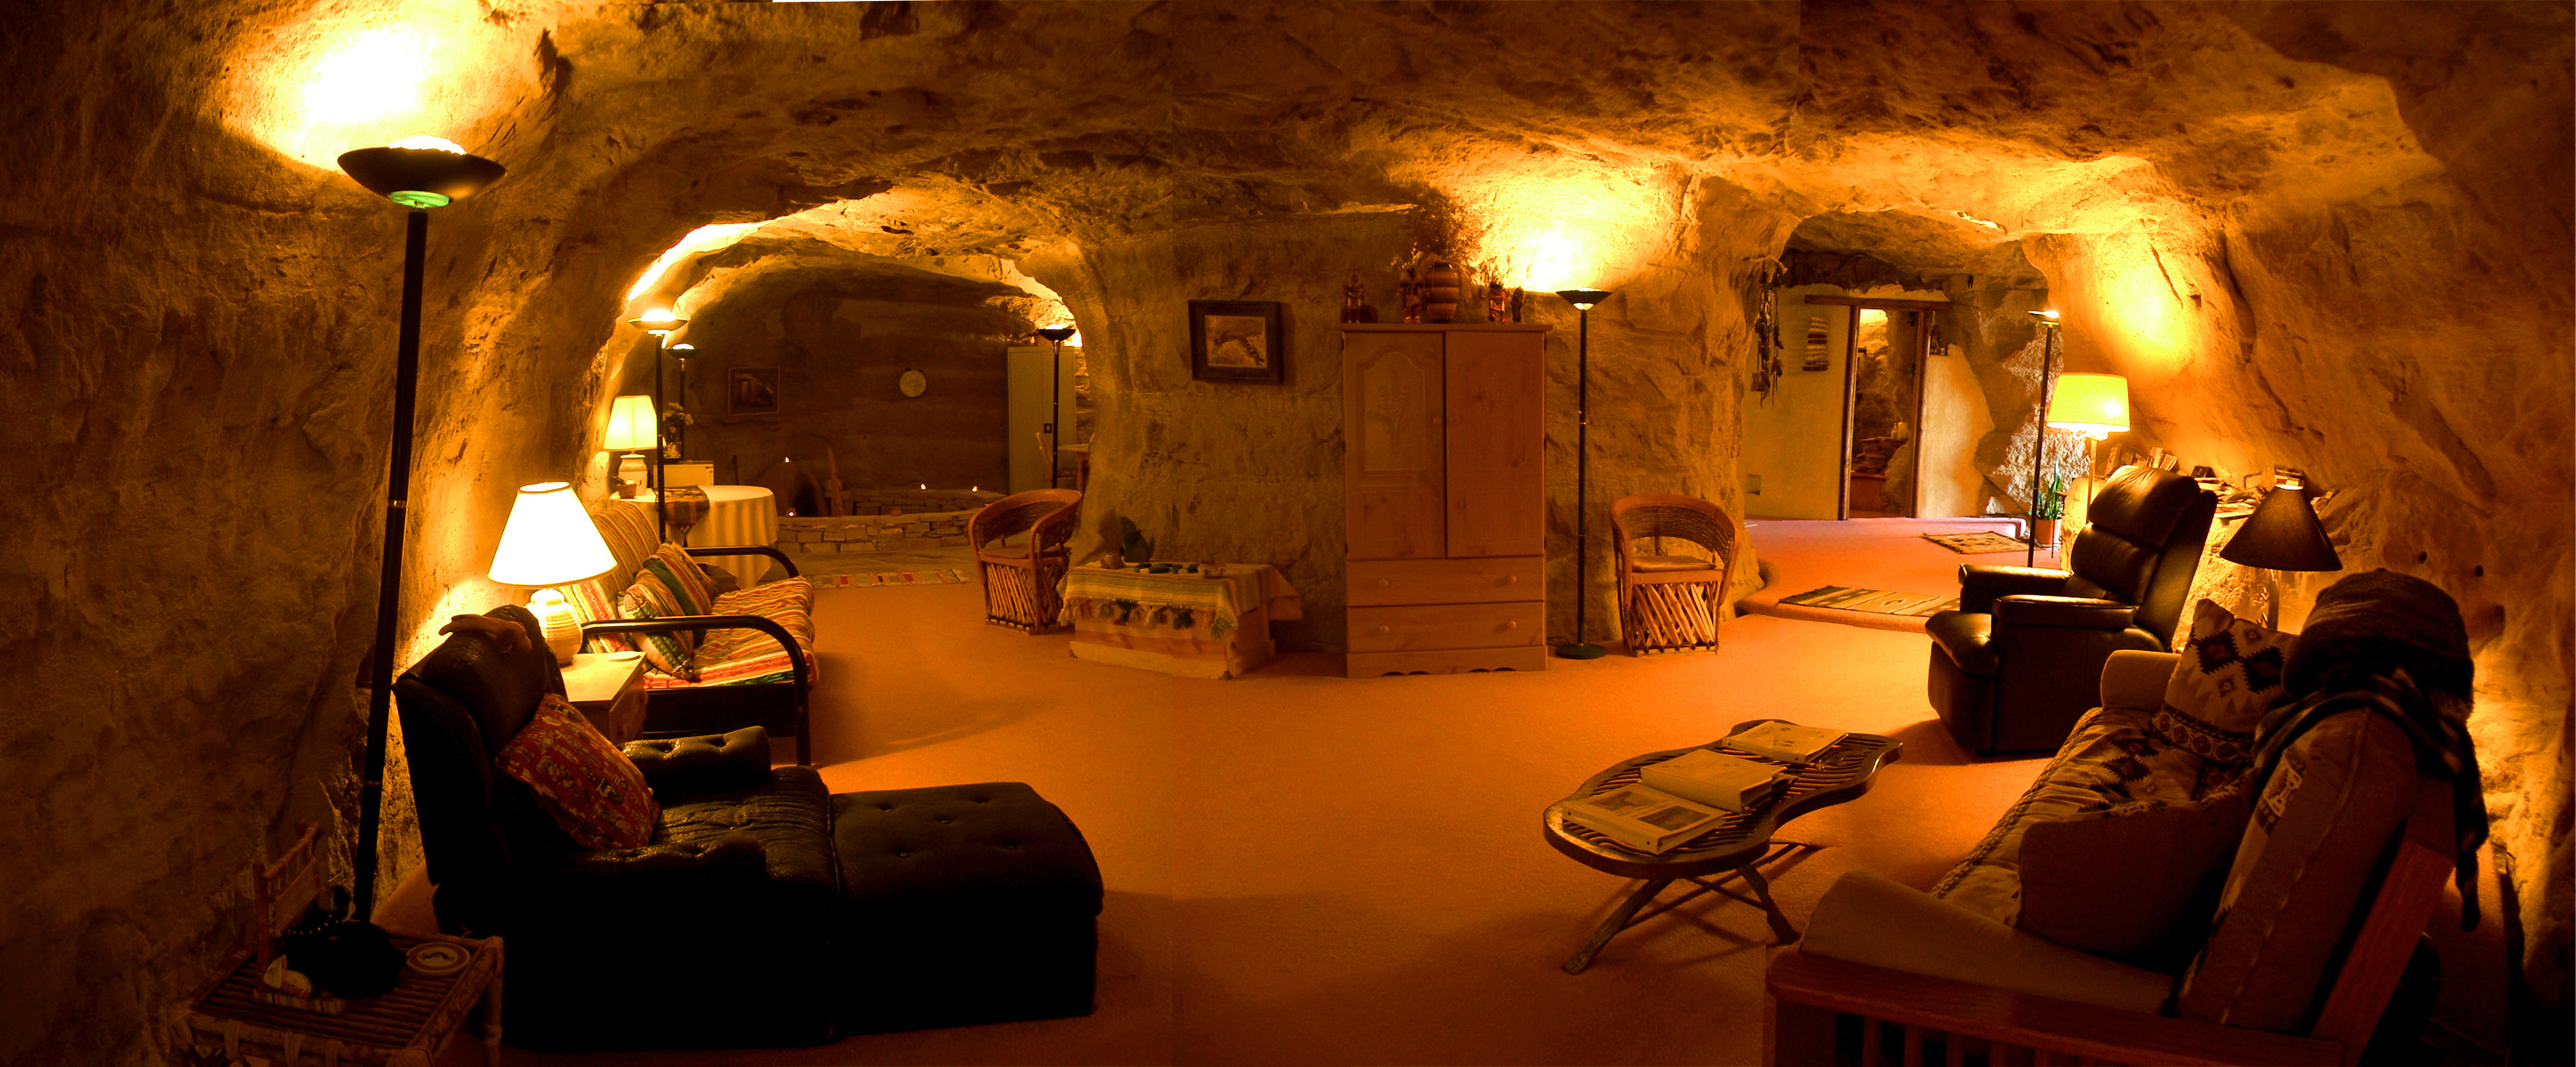 Panoramic view of the main rooms inside Kokopelli's Cave, carved into solid rock. Photo courtesy Kokopelli's Cave.